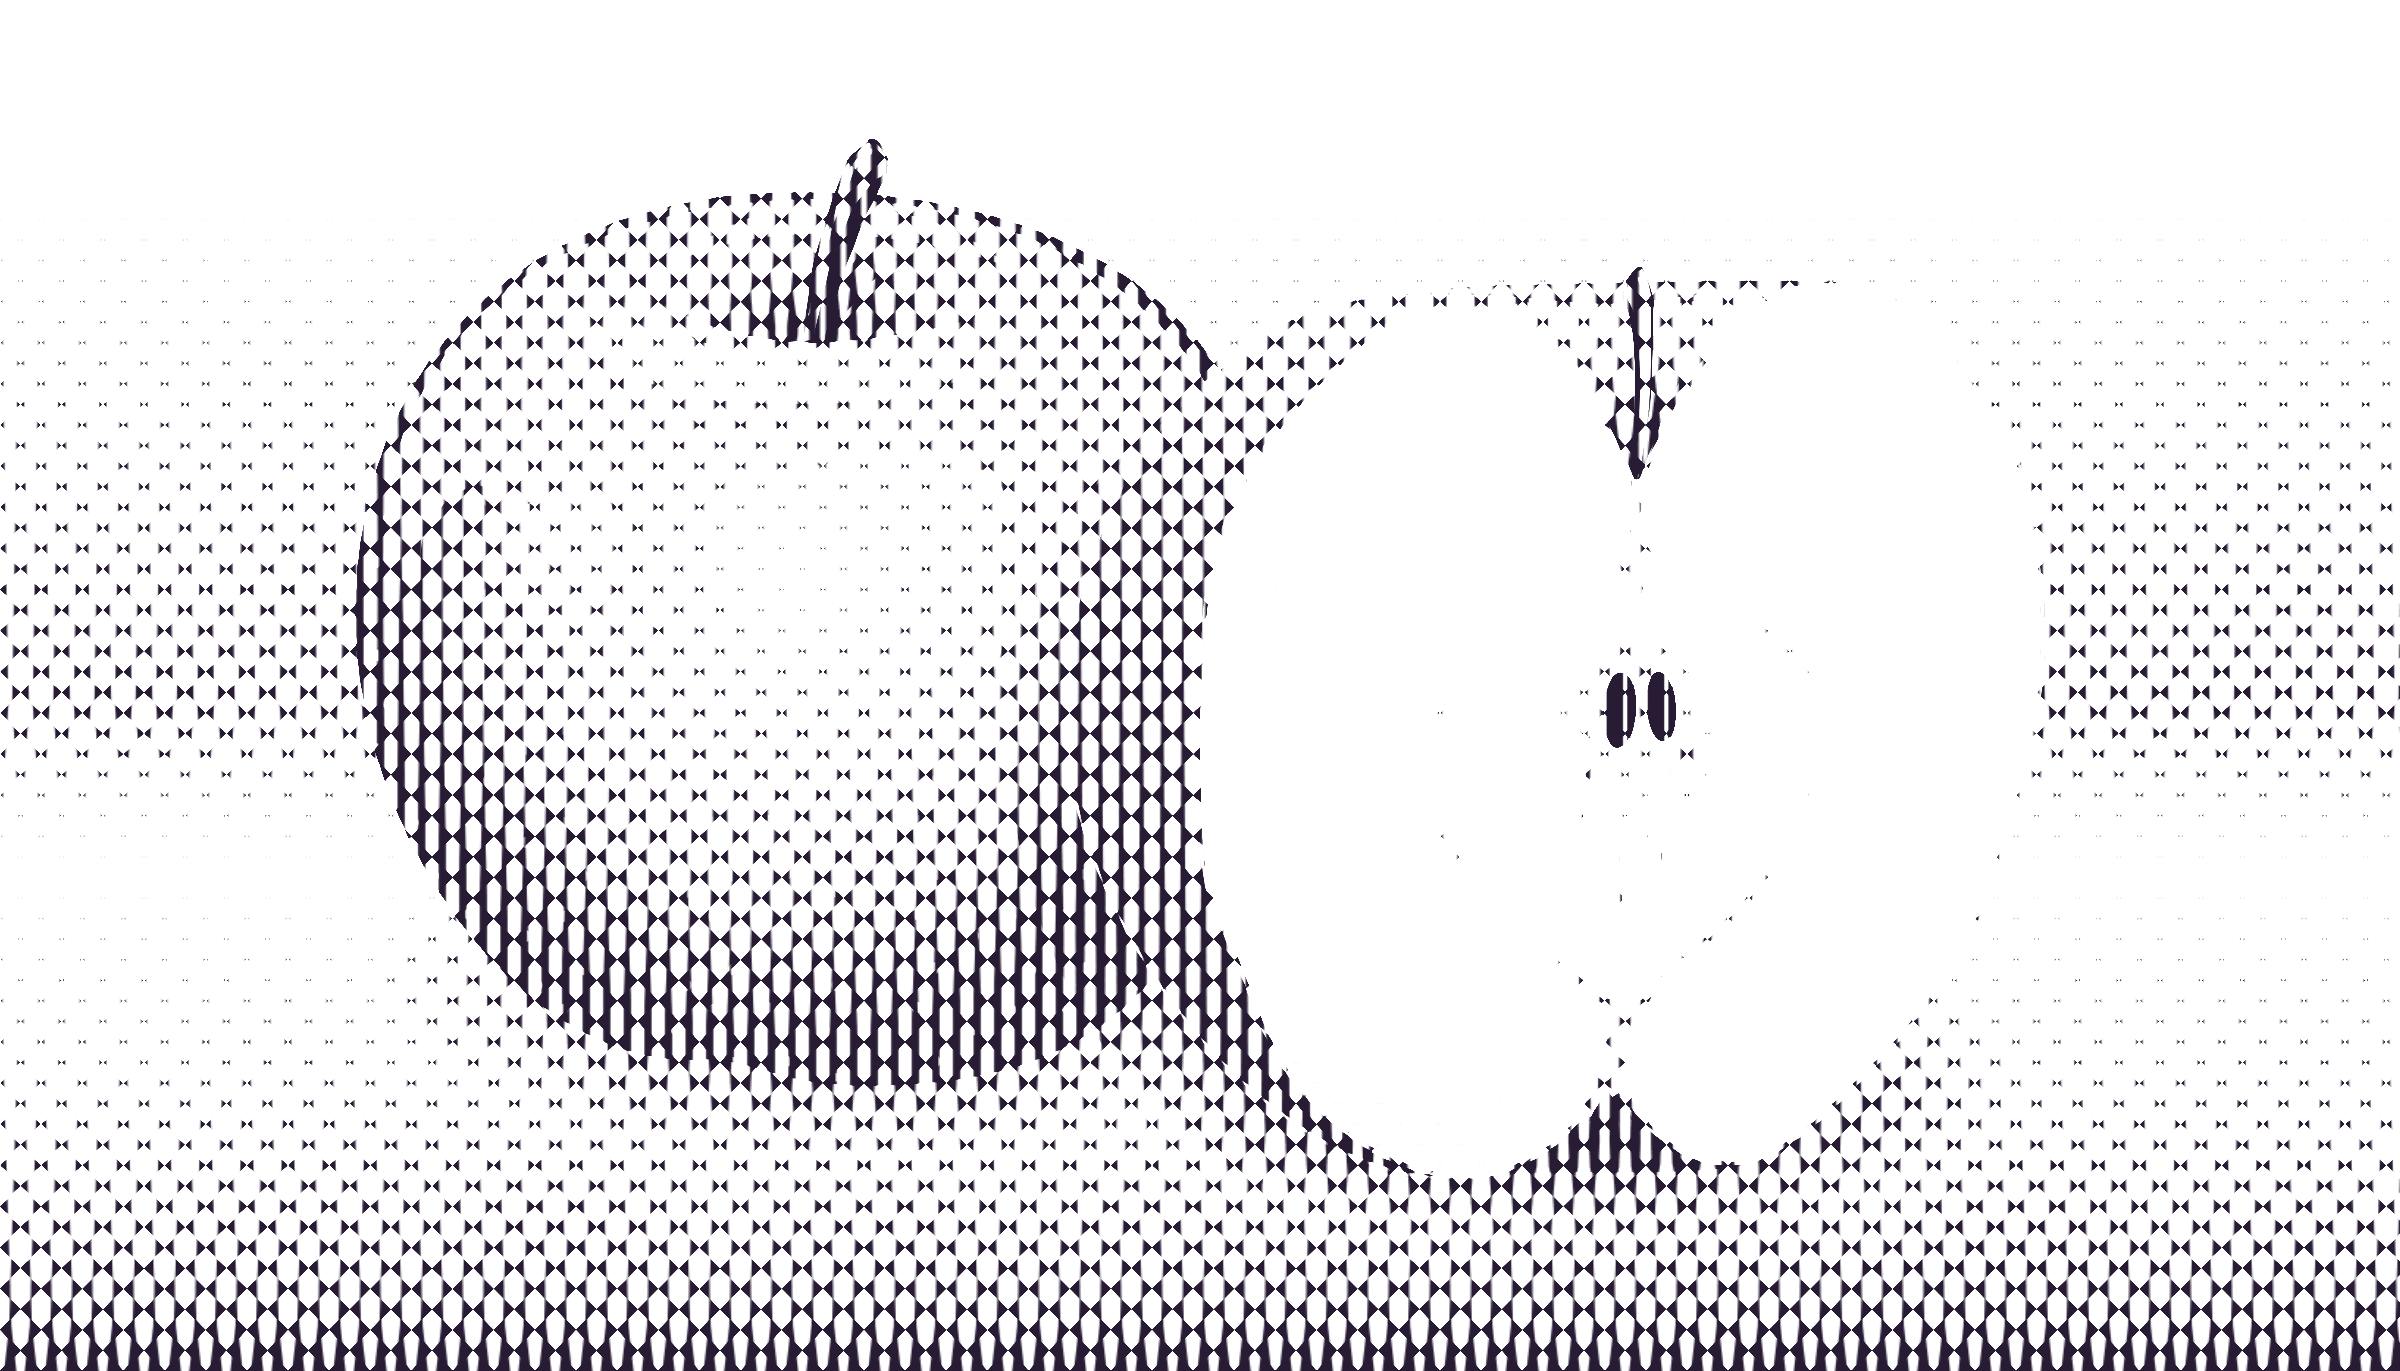 halftone apple 13 by Lazur URH